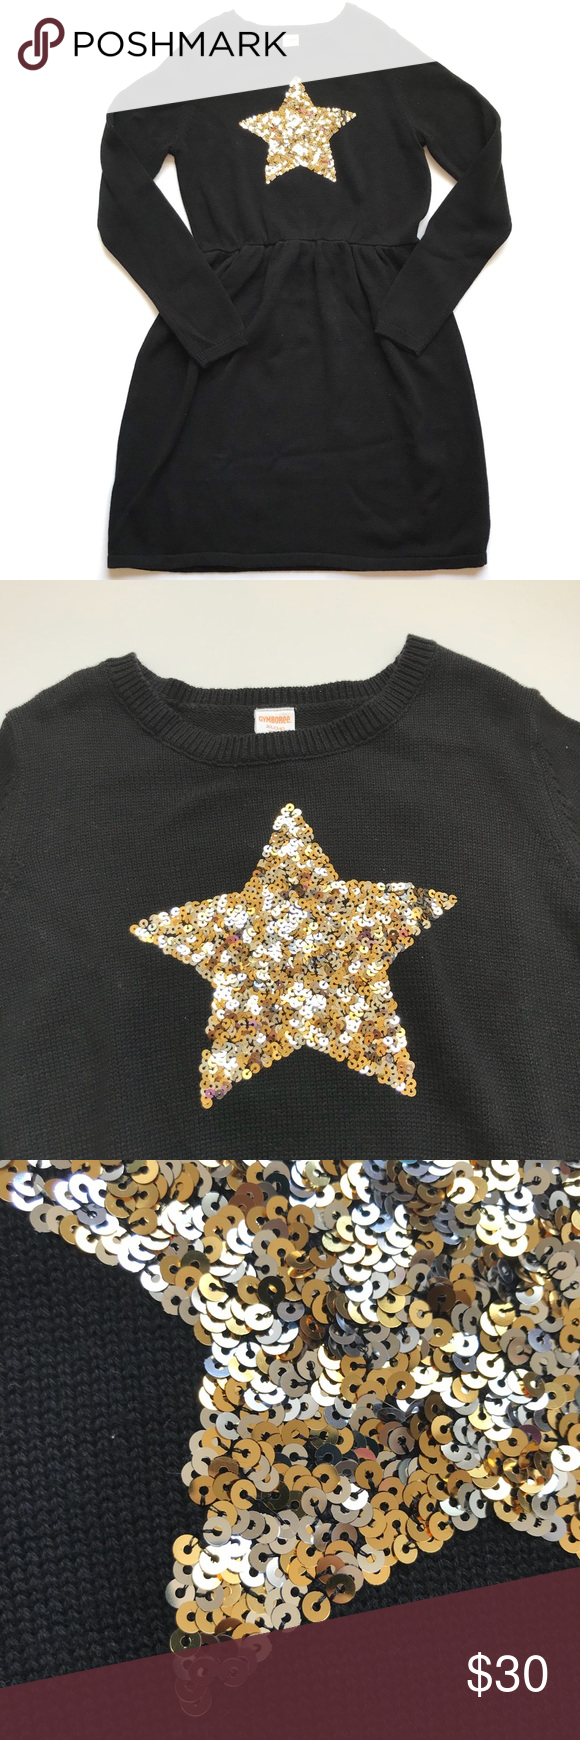 Gymboree Winter Star Sweater Dress Black Gold Sequin Nwt Girls Xl 14